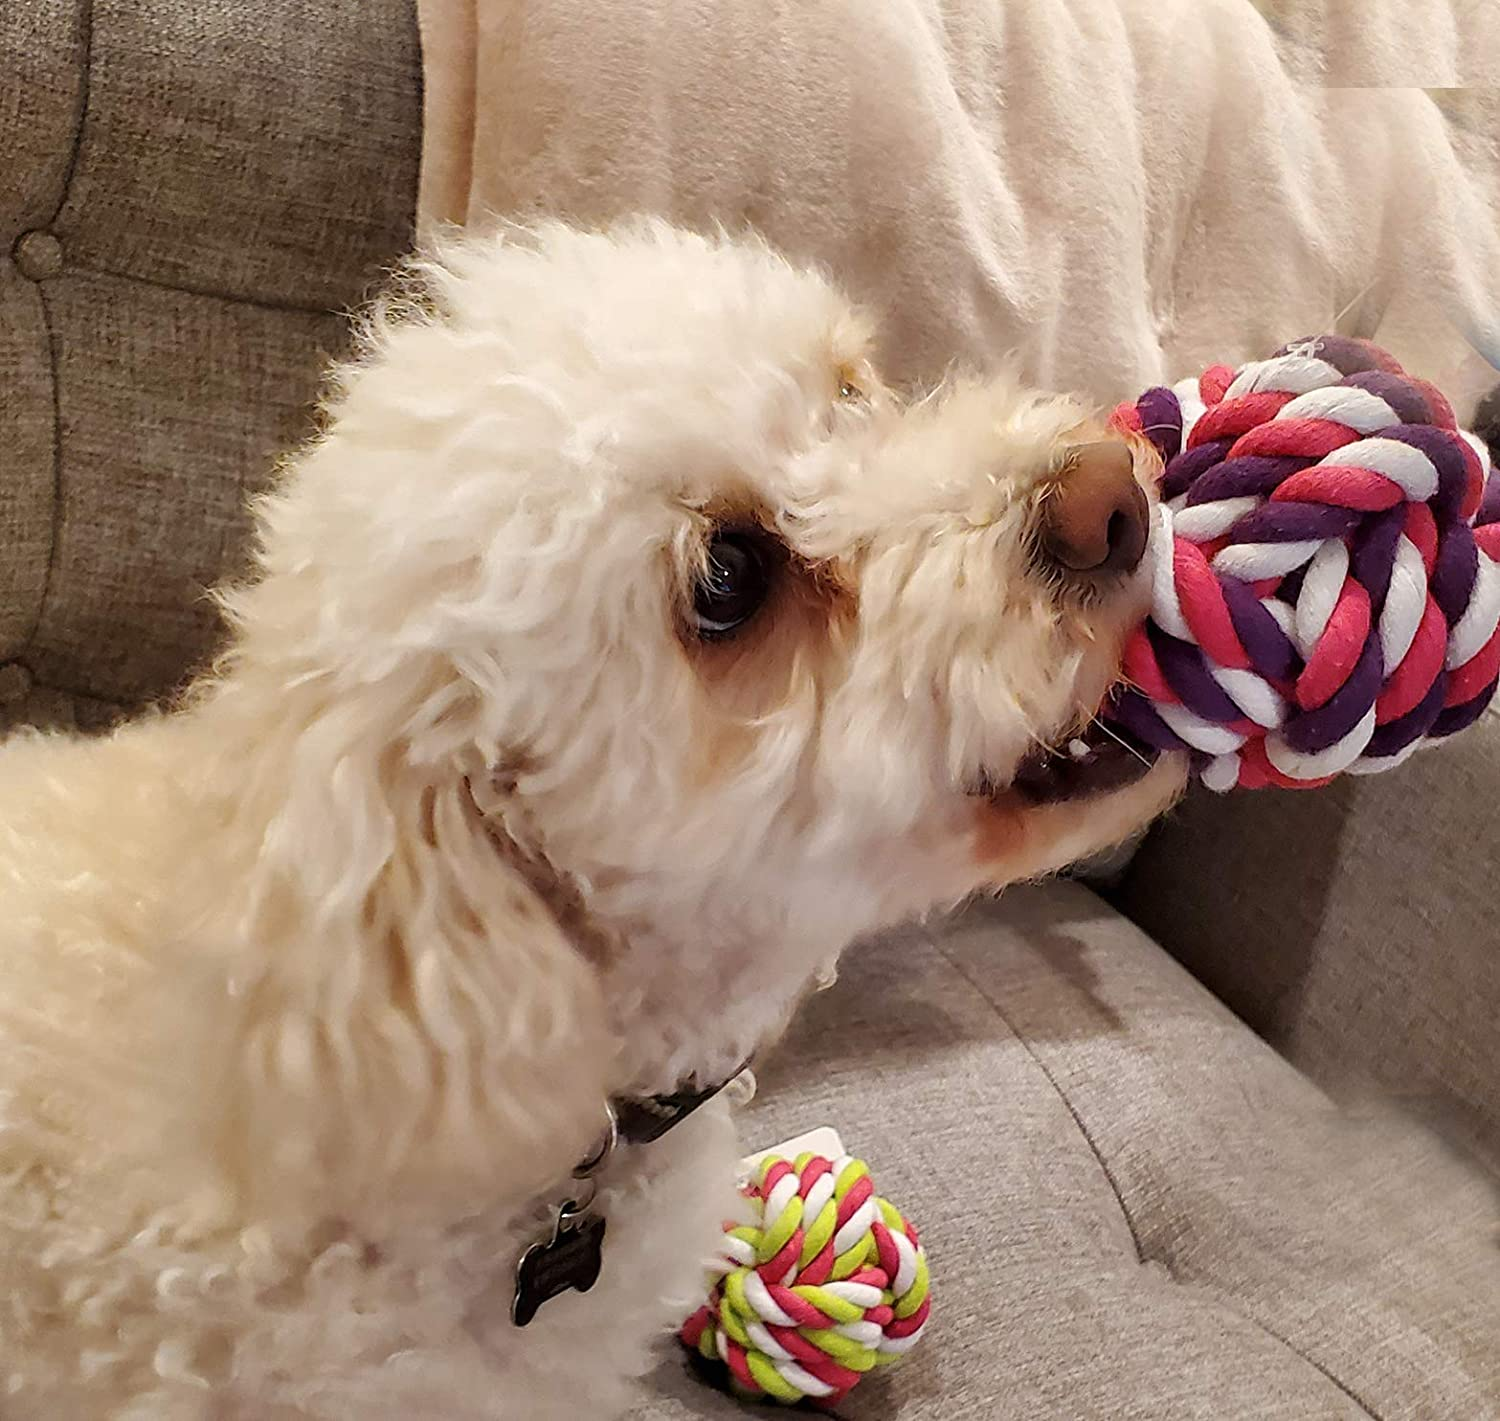 Rope Toy for Pets 4 Pack Zelica Twisted Knot Rope Dog Toy Ball Fun Exercise Toy for Aggressive Chewer Dogs